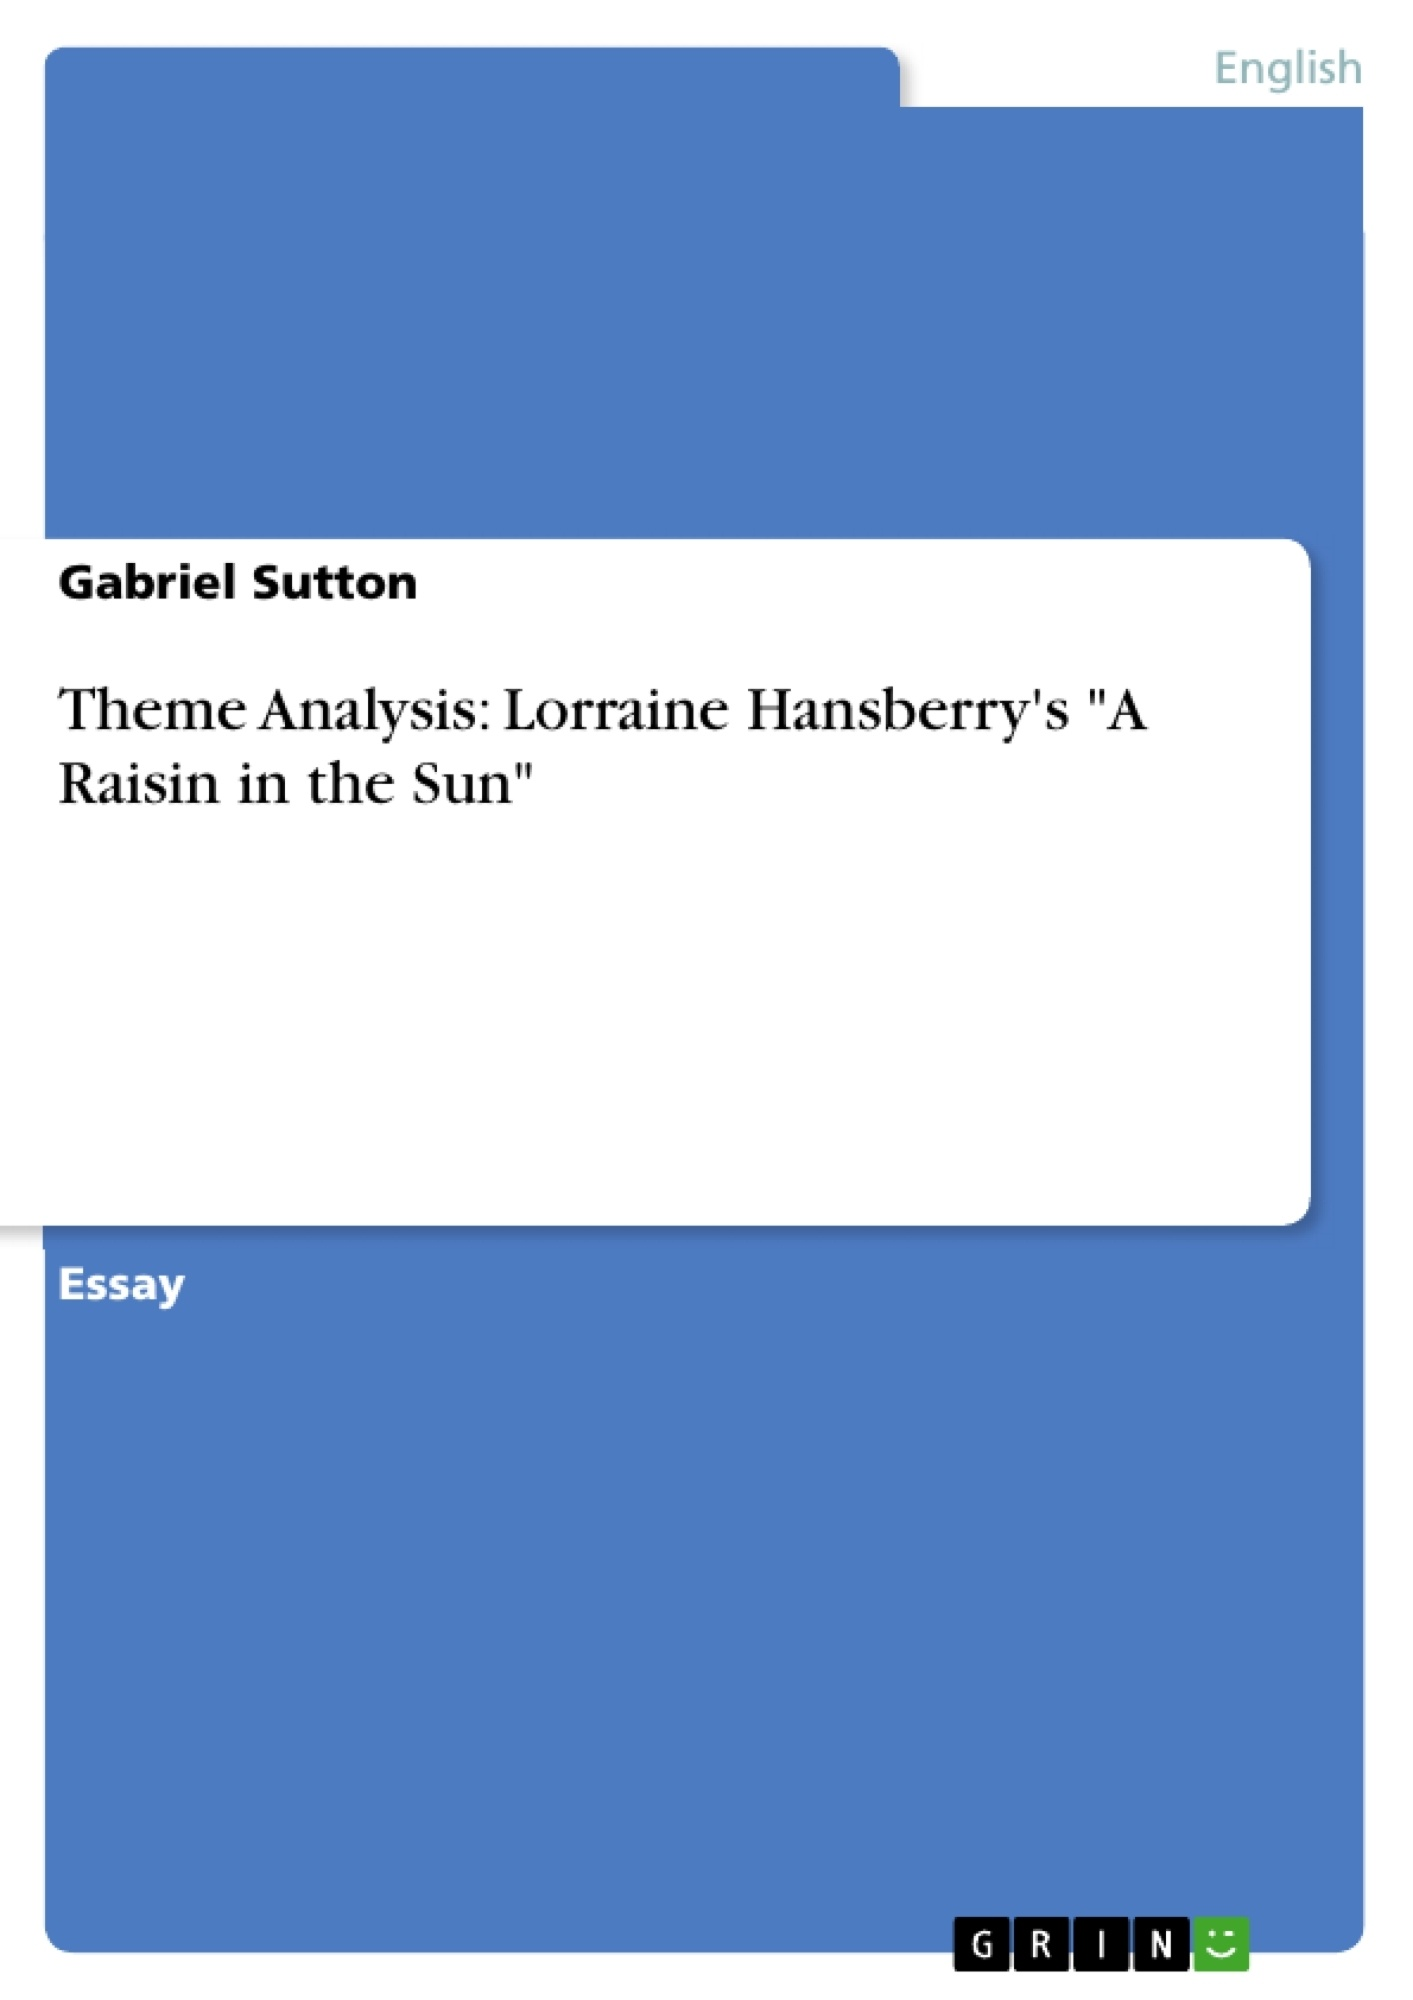 theme analysis lorraine hansberry s a raisin in the sun  earn money and win an iphone x